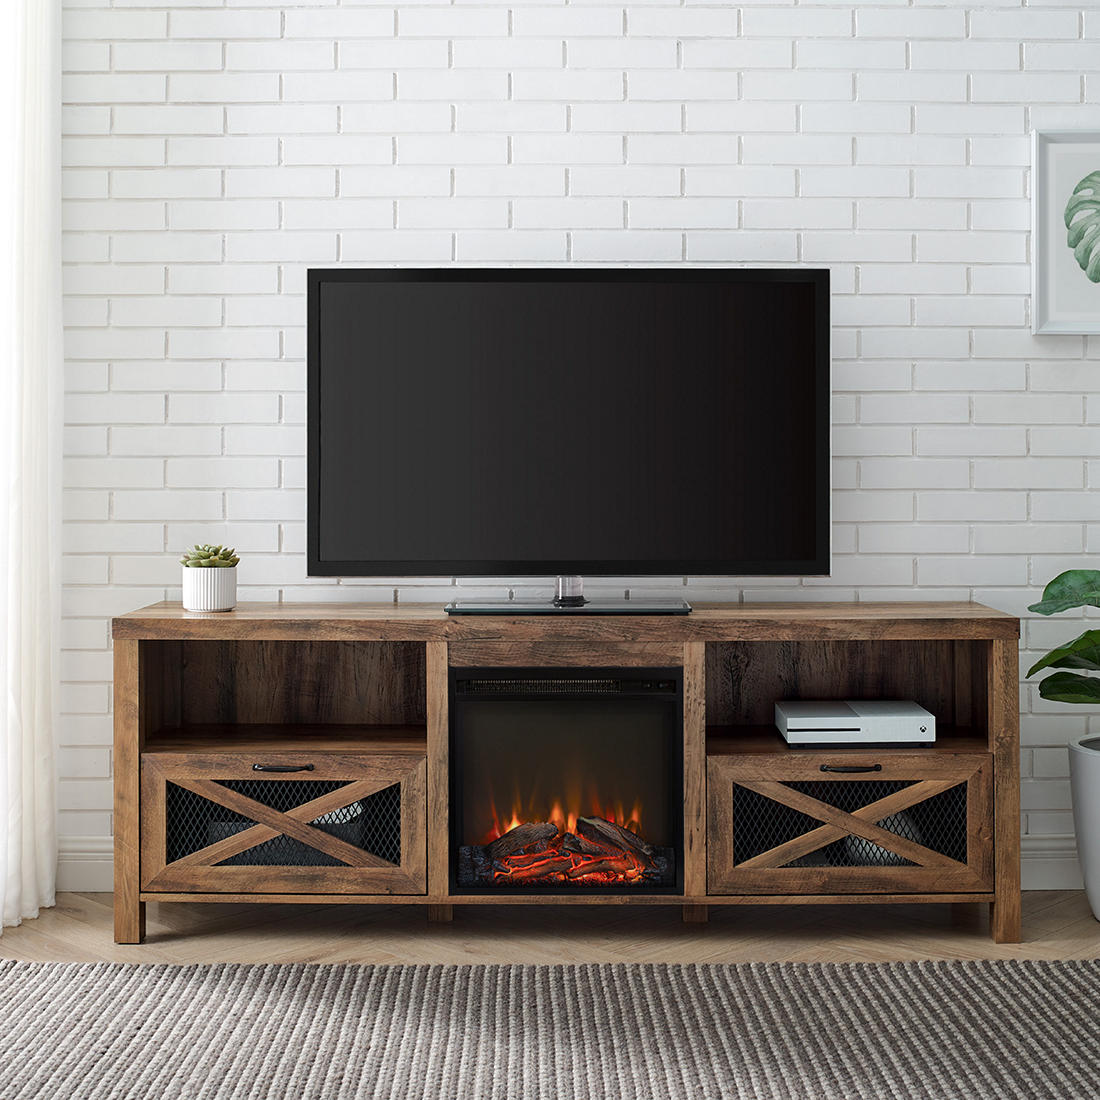 Groovy W Trends 70 Farmhouse Fireplace Tv Stand Rustic Oak Download Free Architecture Designs Estepponolmadebymaigaardcom